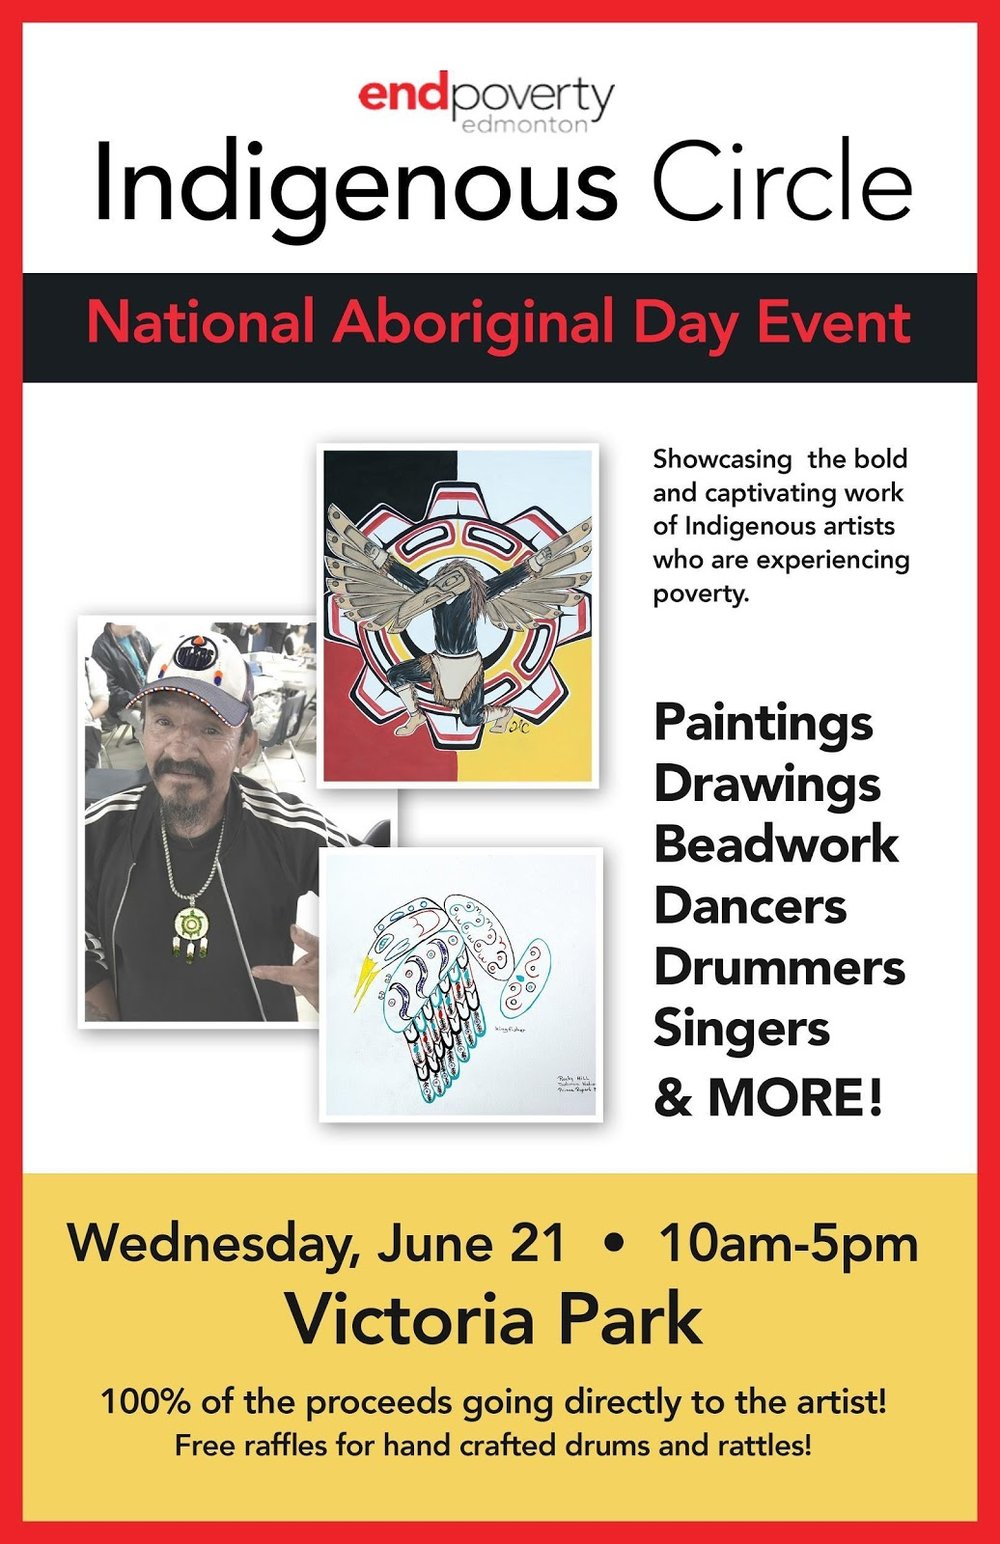 NationalAboriginalDayPoster.jpg